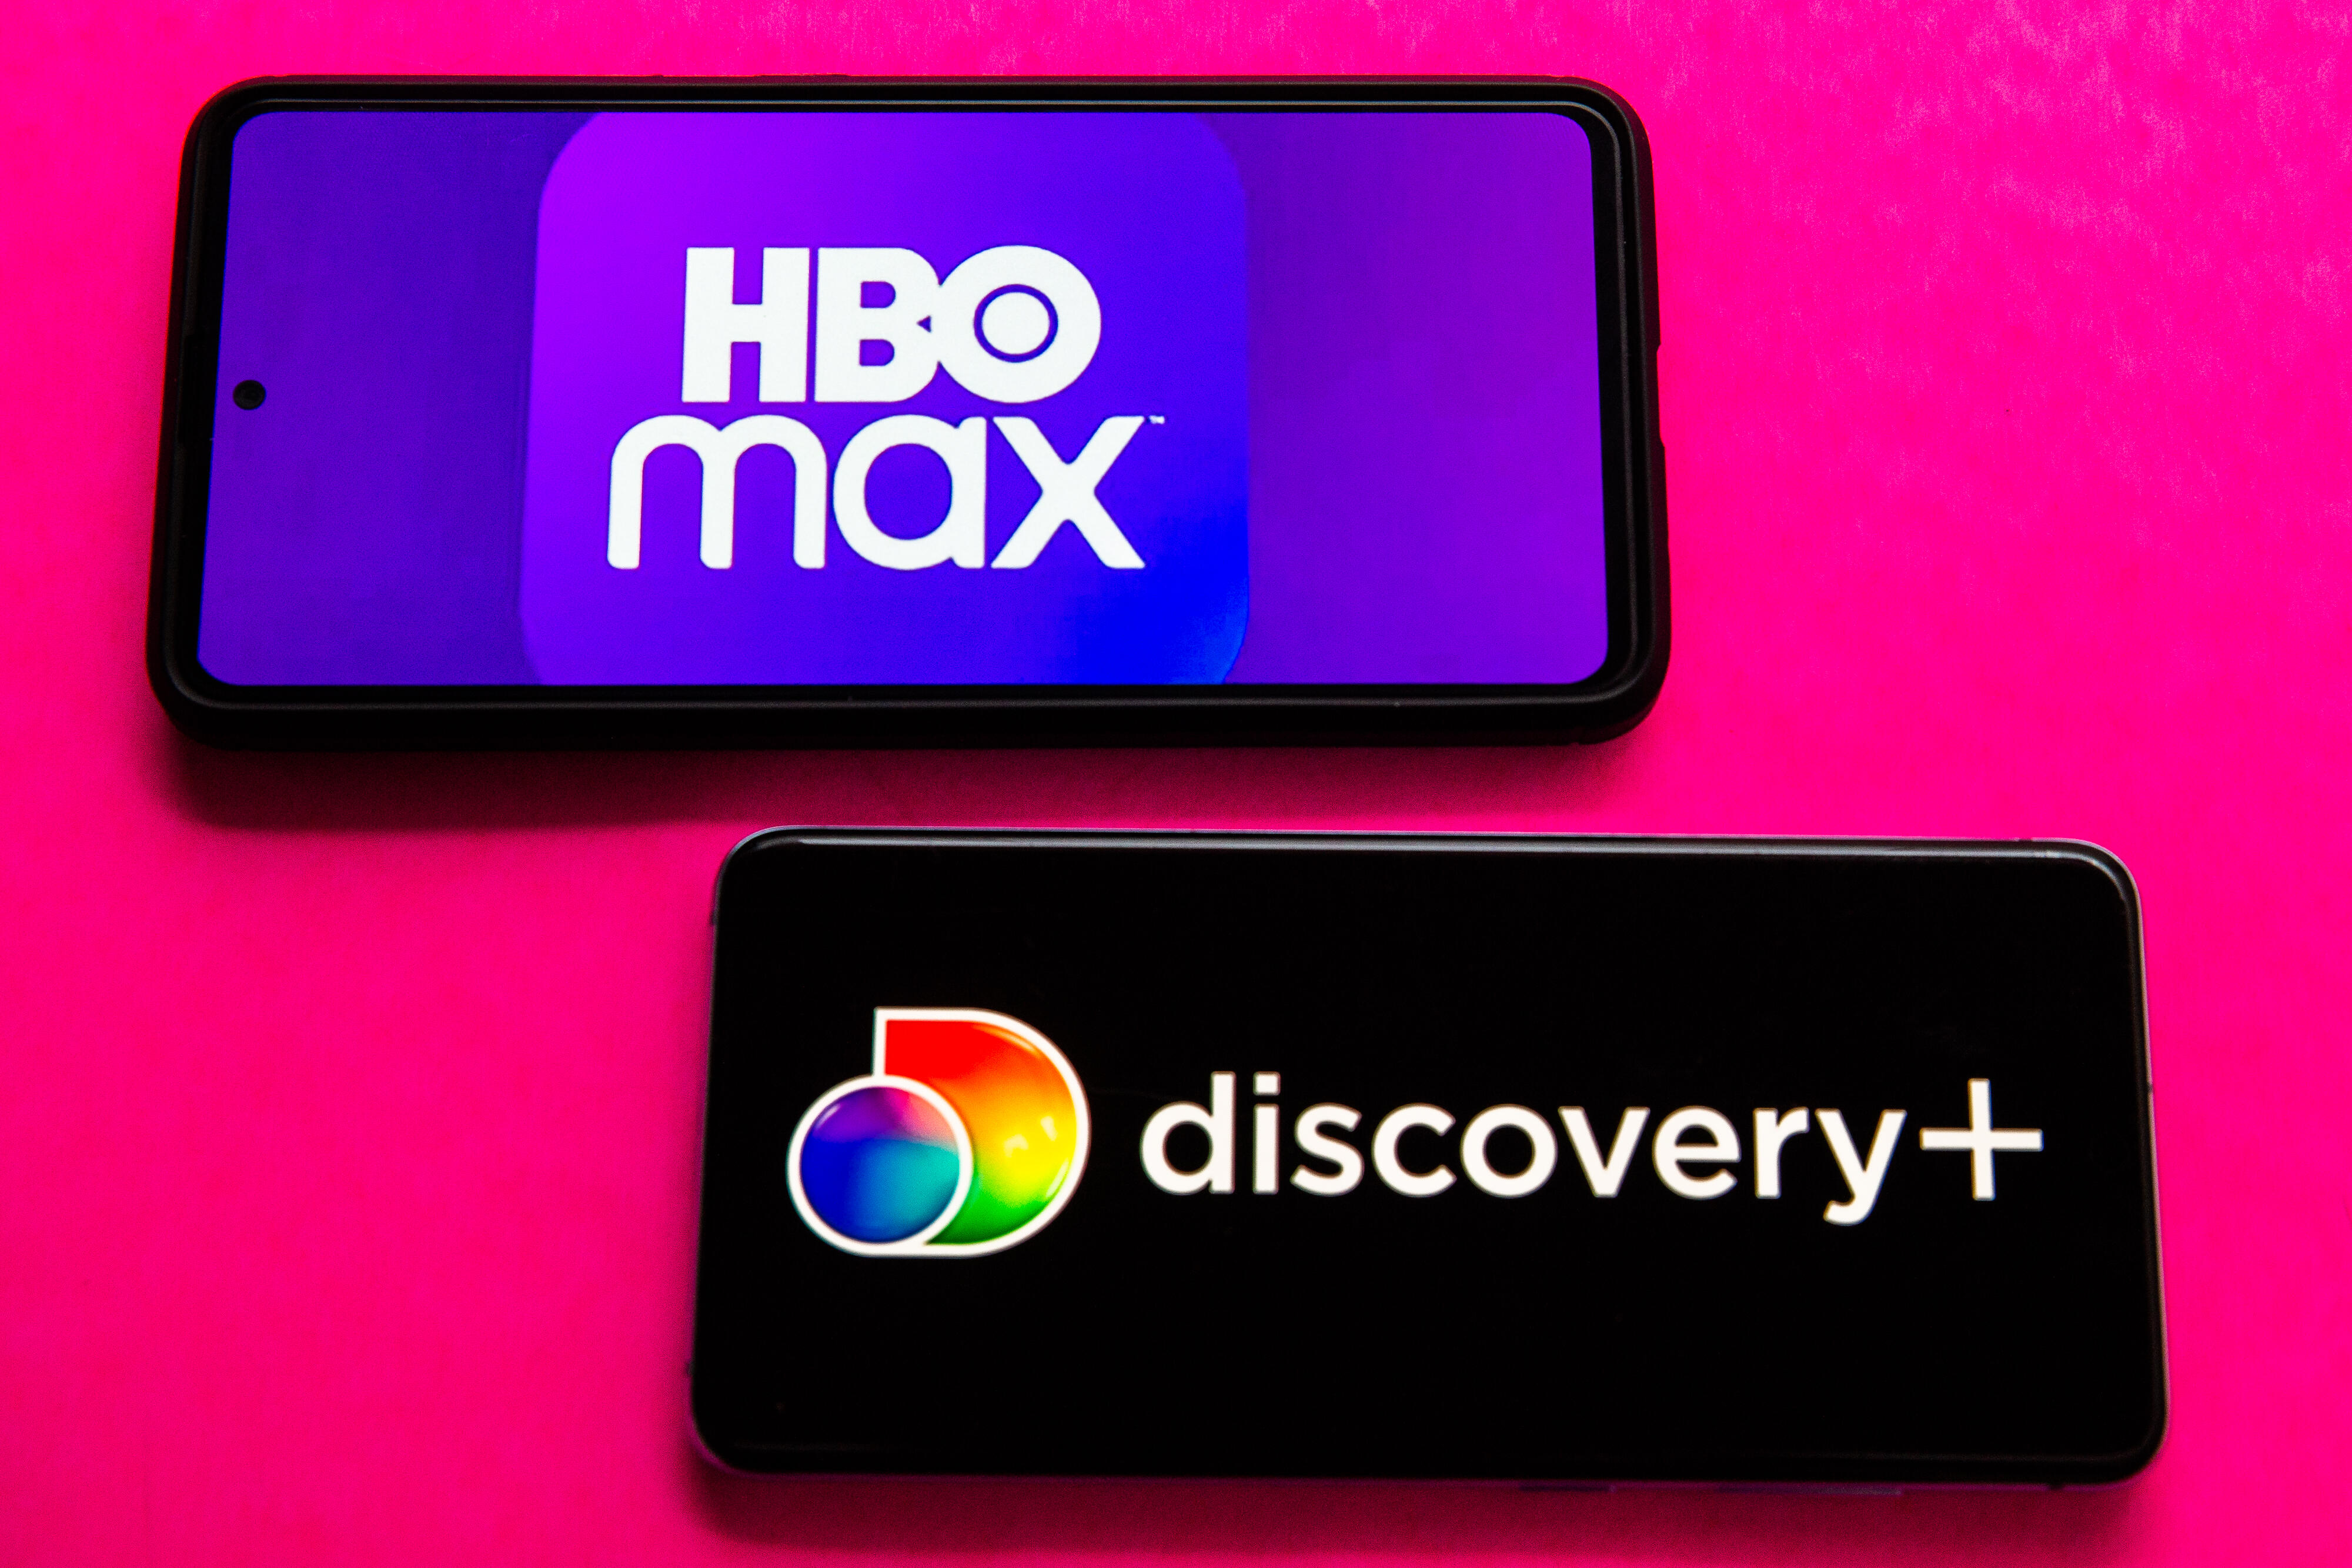 hbo-max-discovery-plus-cnet-2021-004